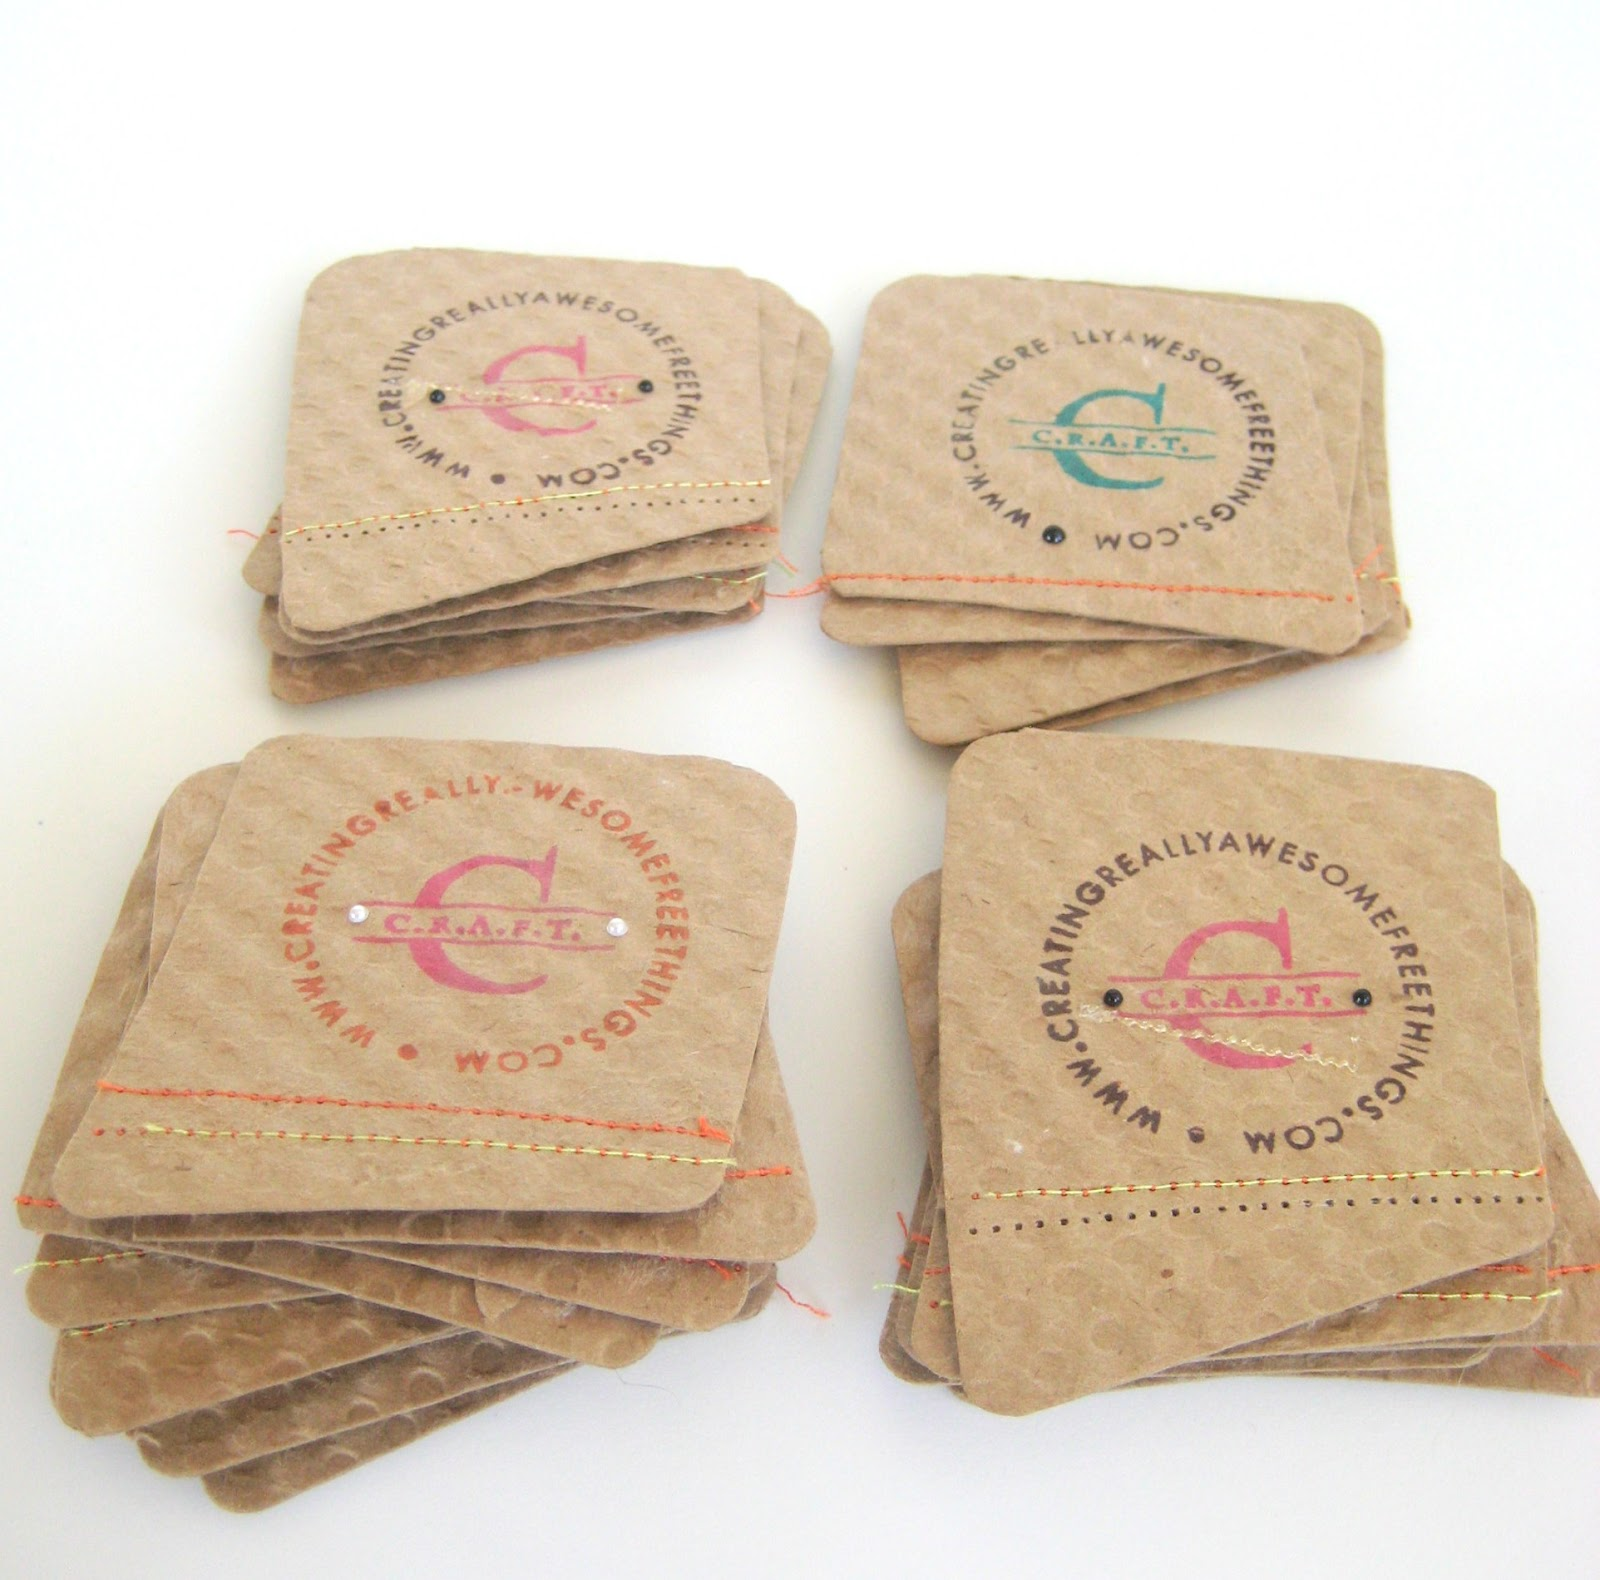 Coffee Sleeve Business Cards - C.R.A.F.T.